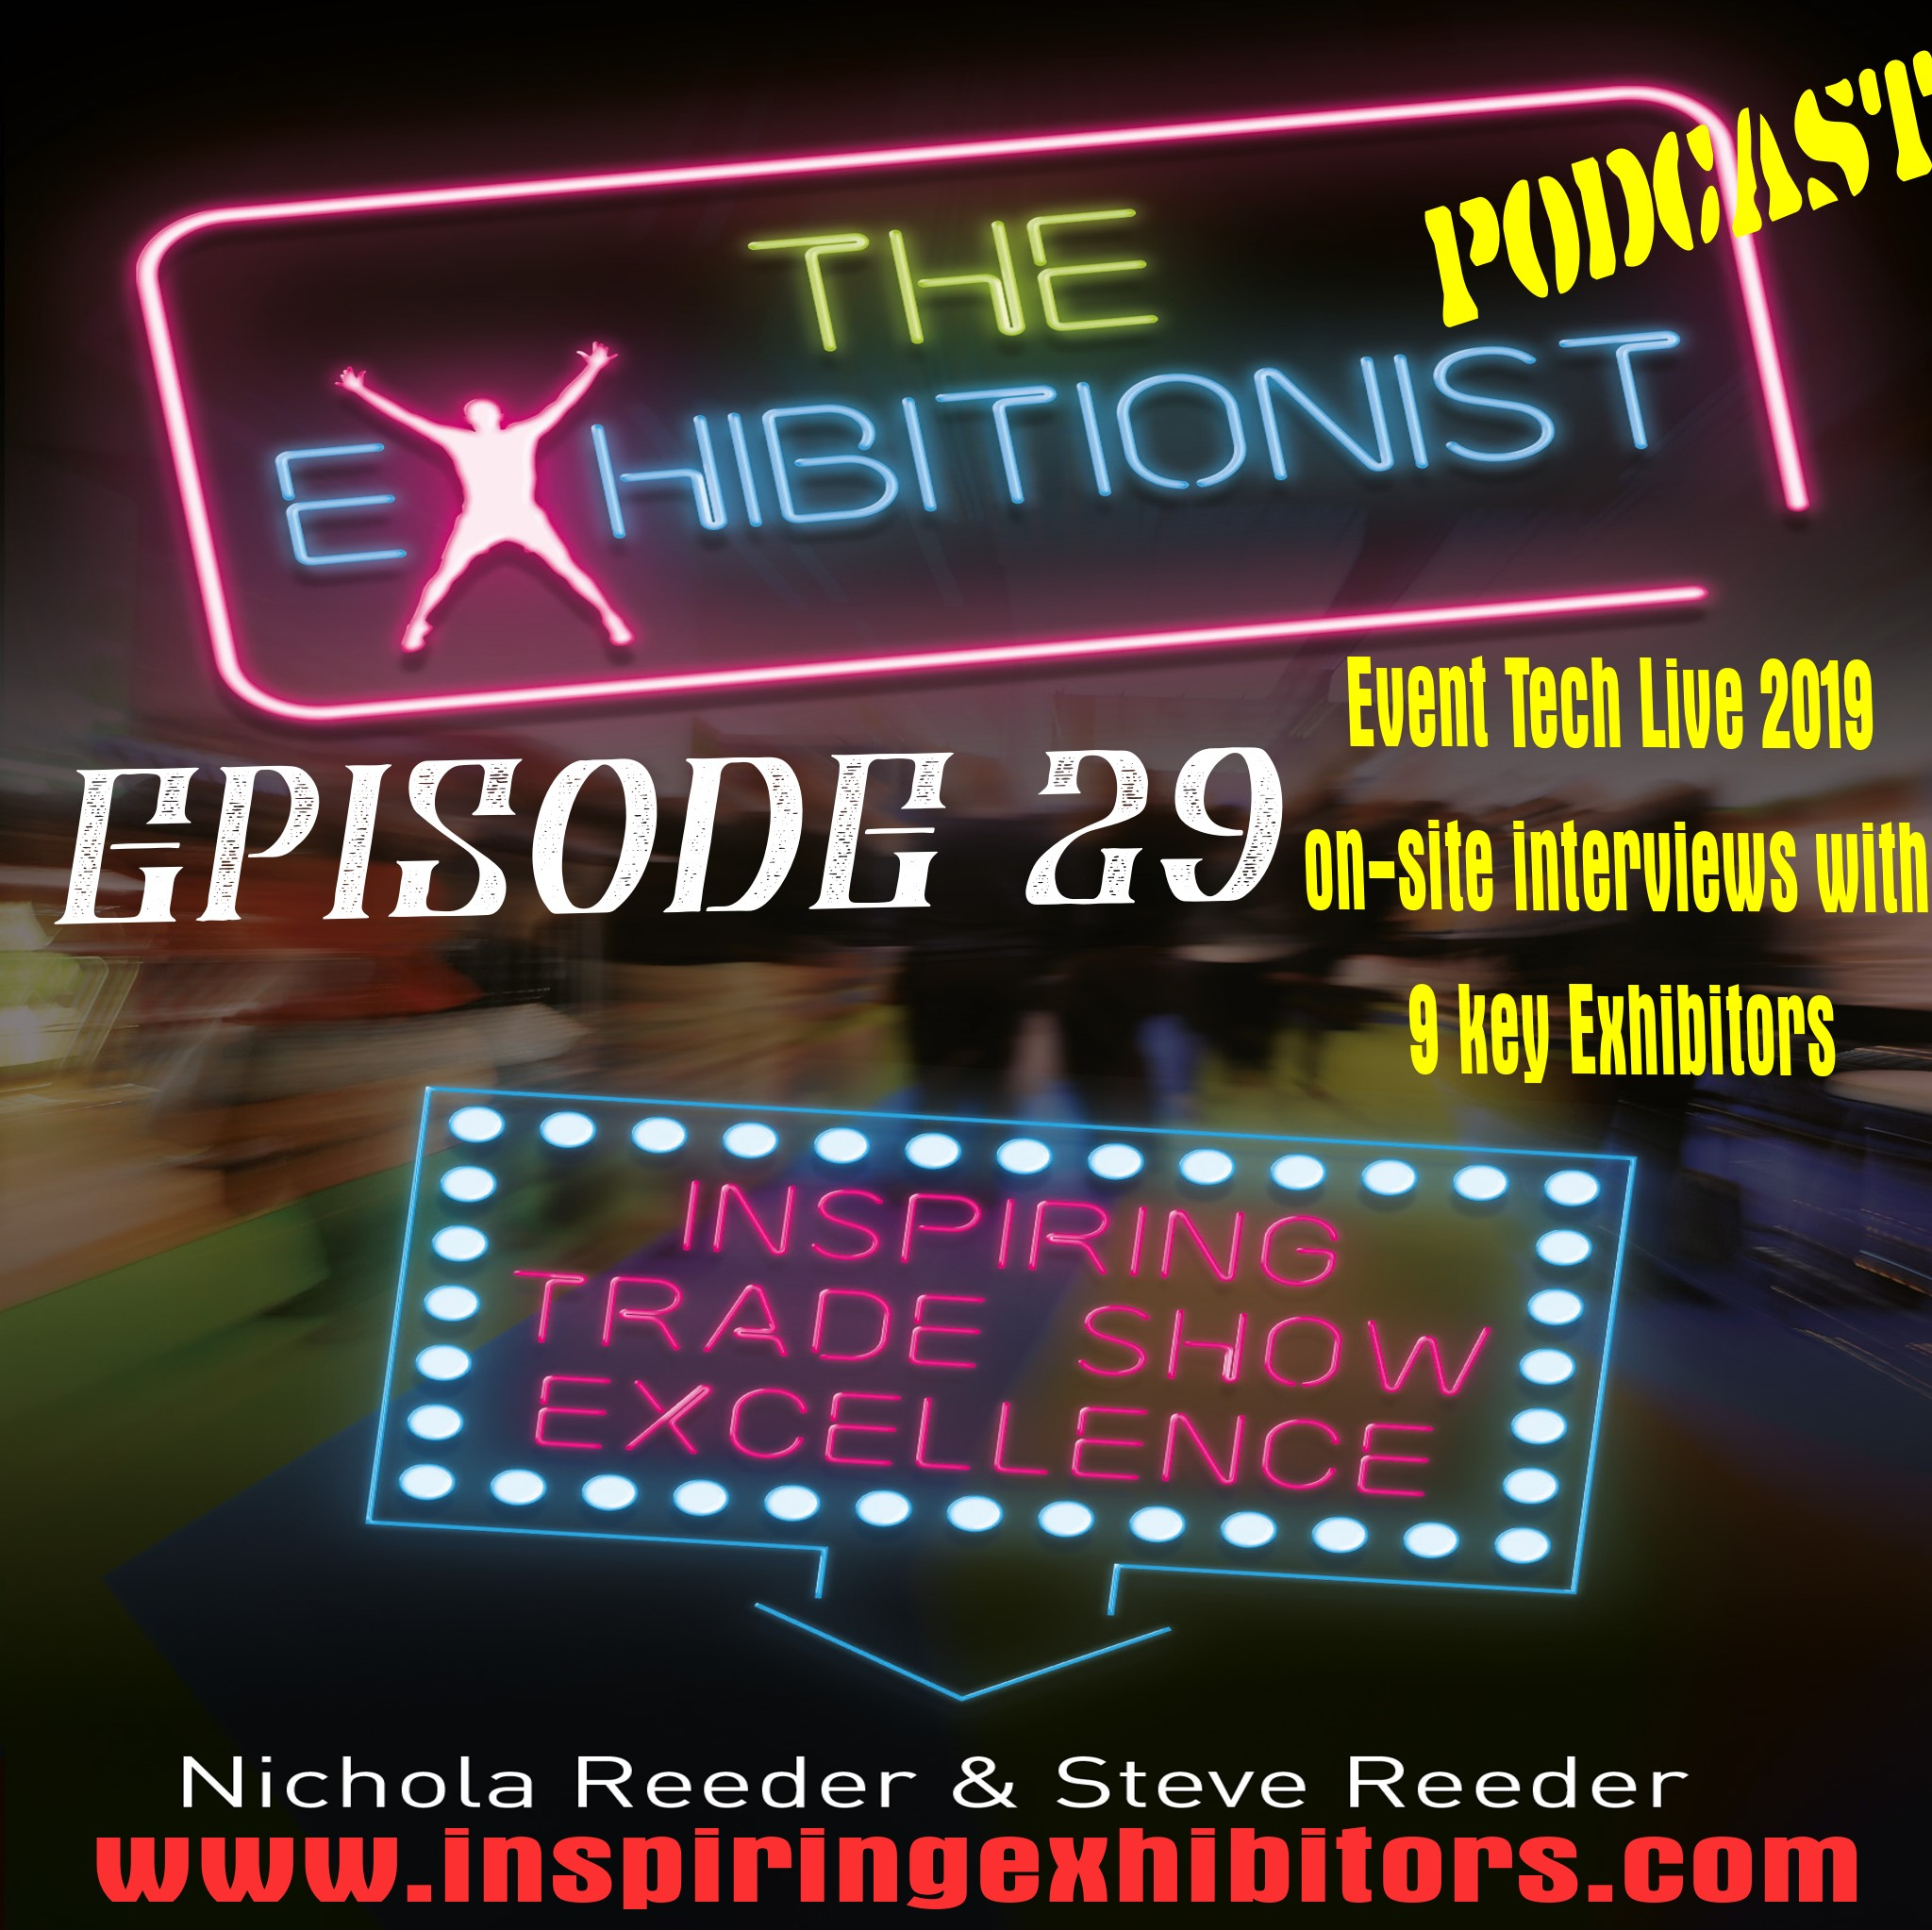 The Exhibitionist Podcast Episode 29 - 10 Exhibitors Interviewed Live at Event Tech Live 2019